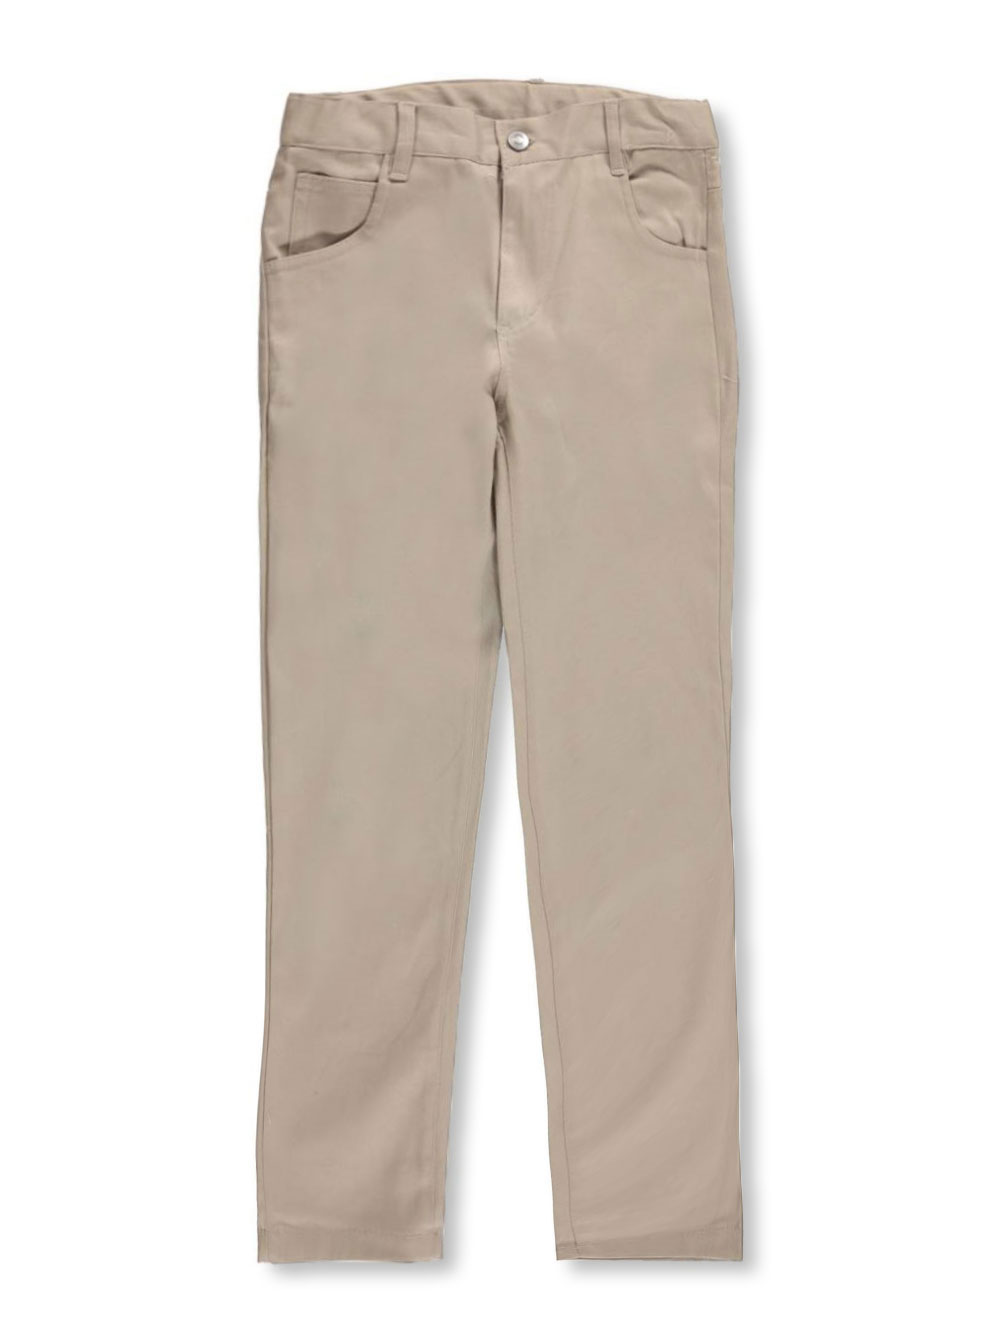 Image of Denice Stretch Little Girls Jean Pocket Skinny Uniform Pants Sizes 4  6X  khaki 5